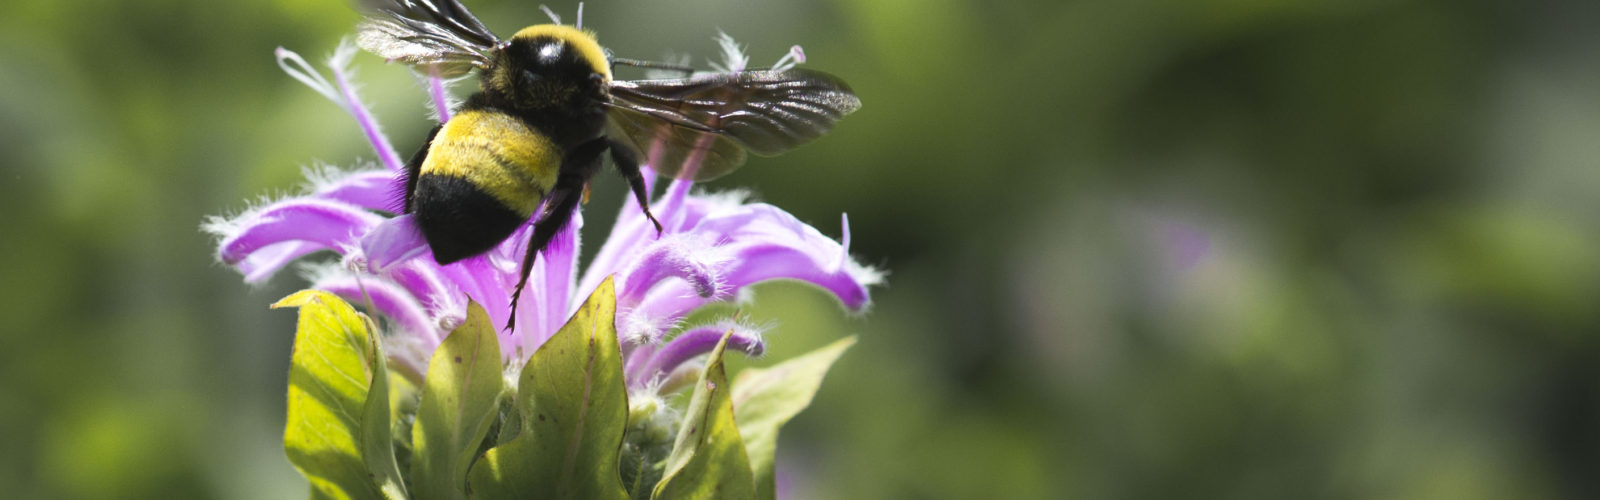 Black and gold bumble bee landing on bee balm